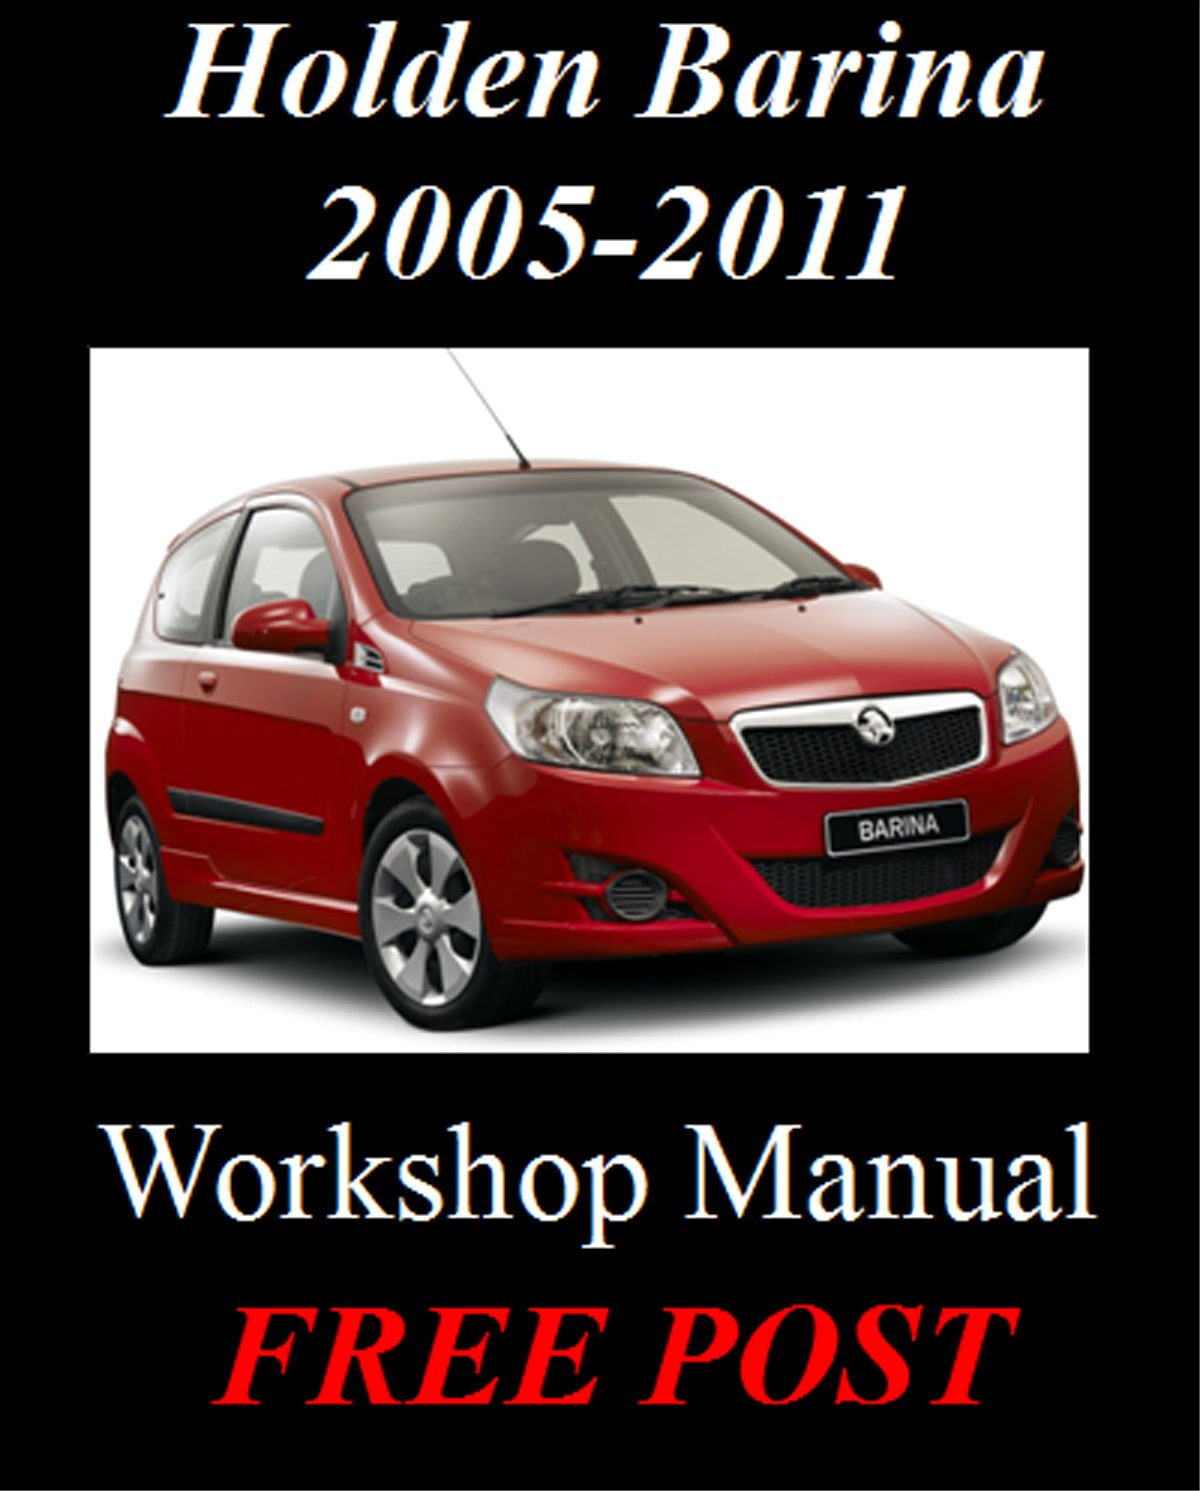 Holden Barina TK 2005-2011 1.6, 1.2, 1.4, 1.5 Workshop Repair Manual ON CD:  Amazon.com.au: Kitchen